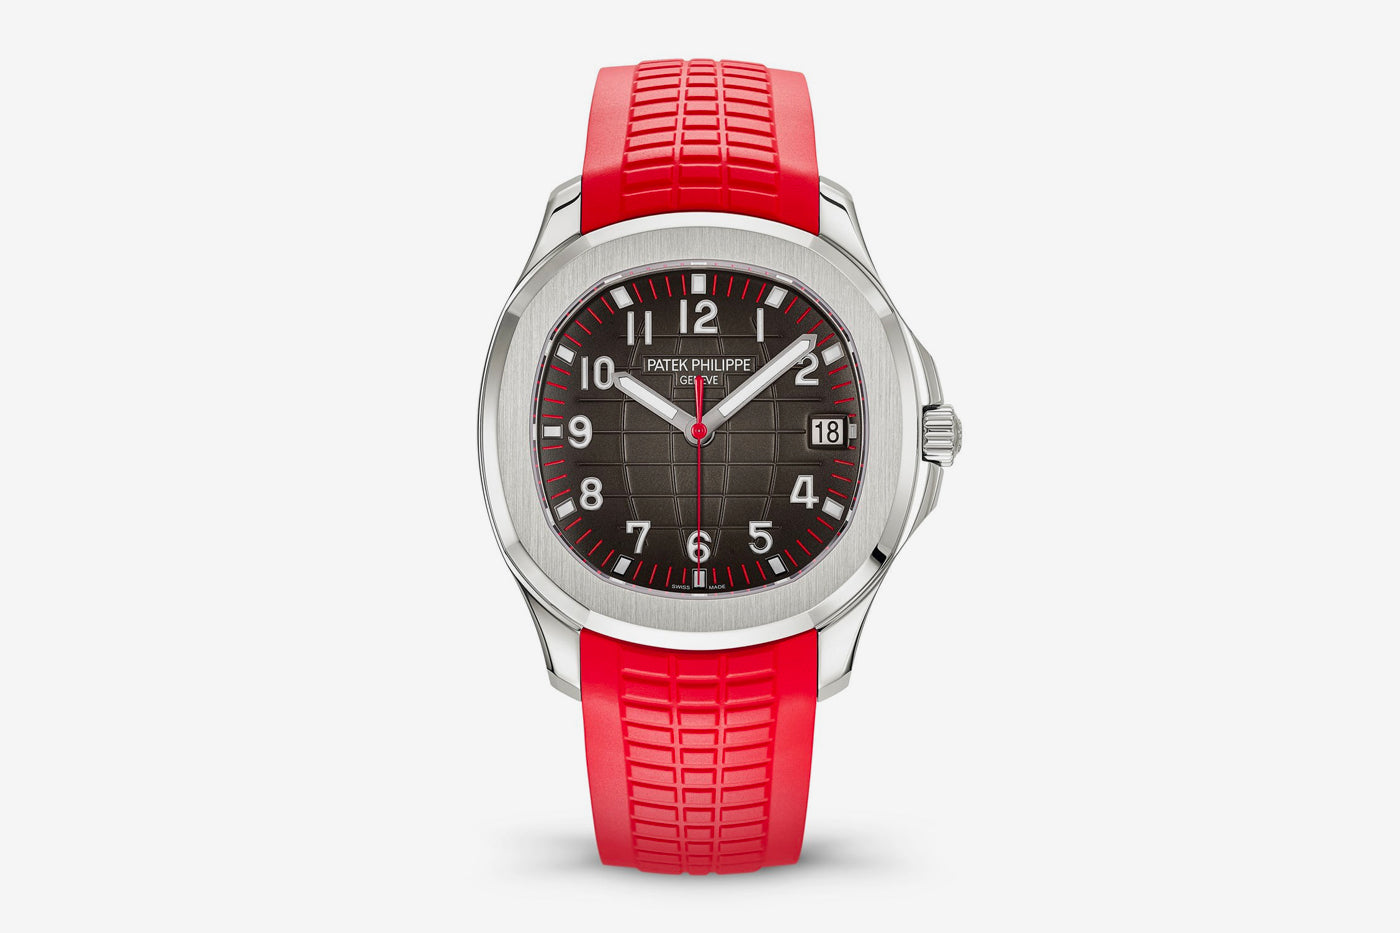 Patek Philippe 5167 Aquanaut Singapore Limited Edition with red rubber strap for A Collected Man London